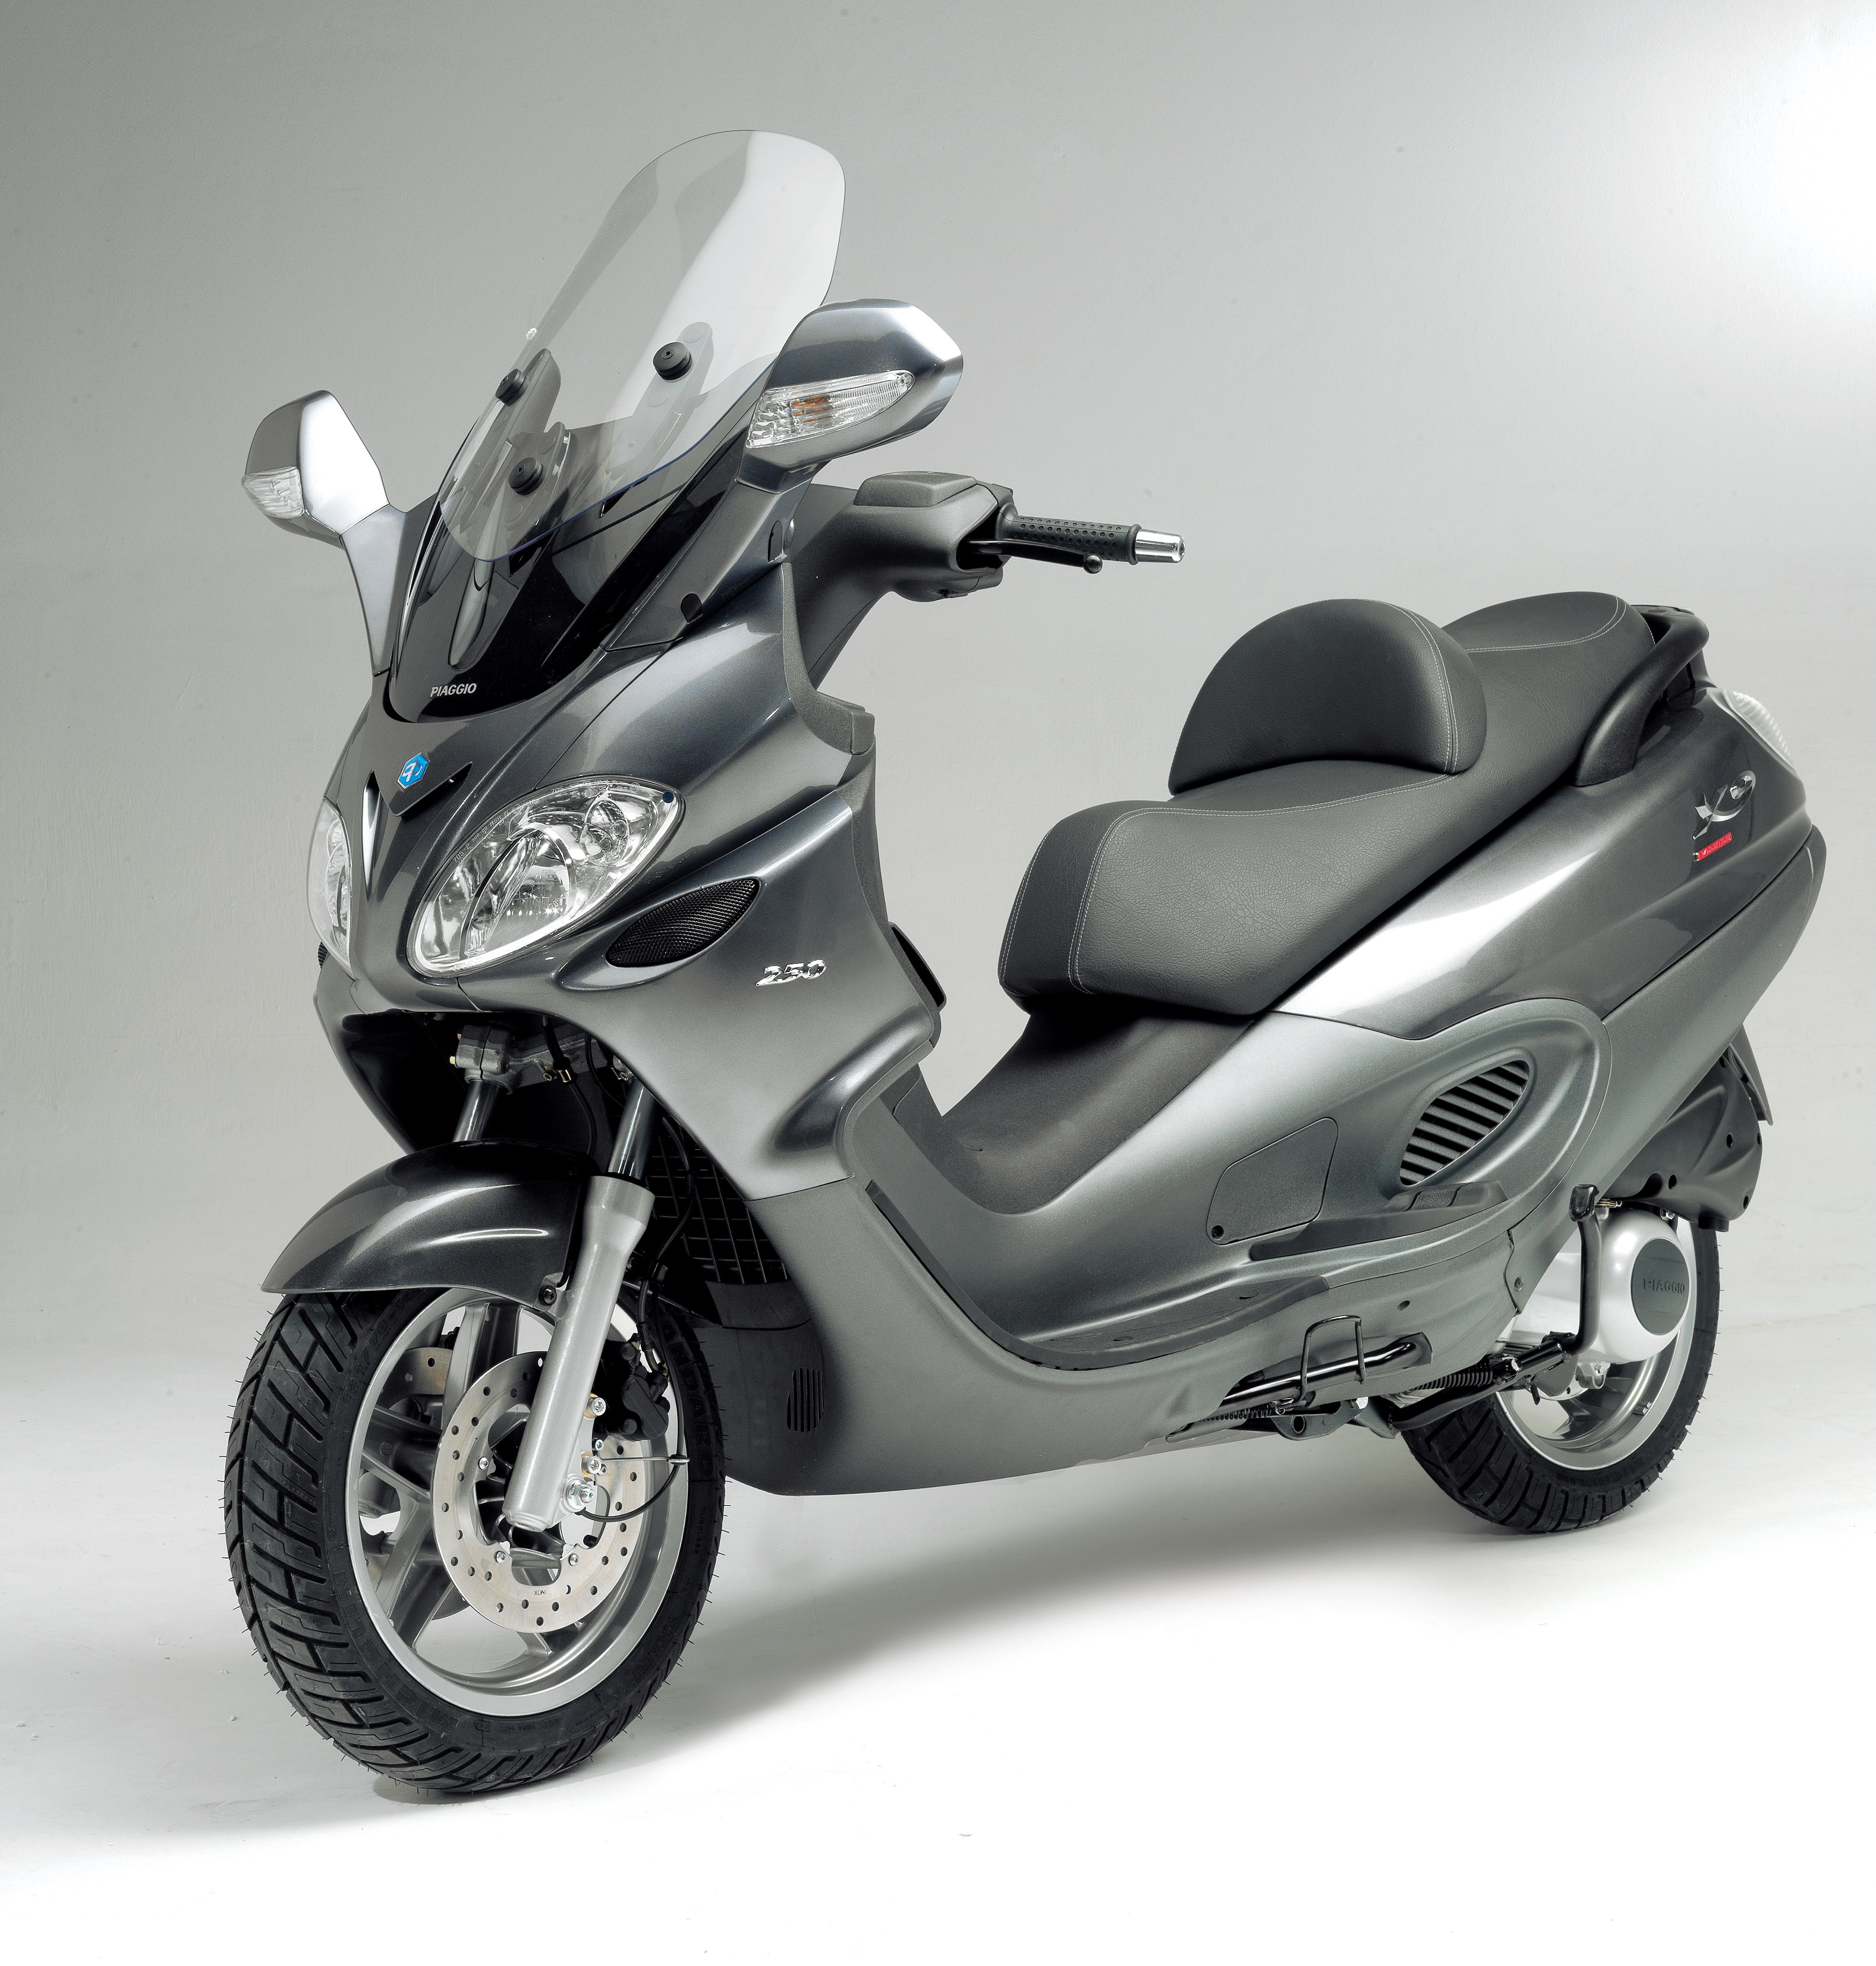 2006 piaggio x9 evolution 250 moto zombdrive com. Black Bedroom Furniture Sets. Home Design Ideas